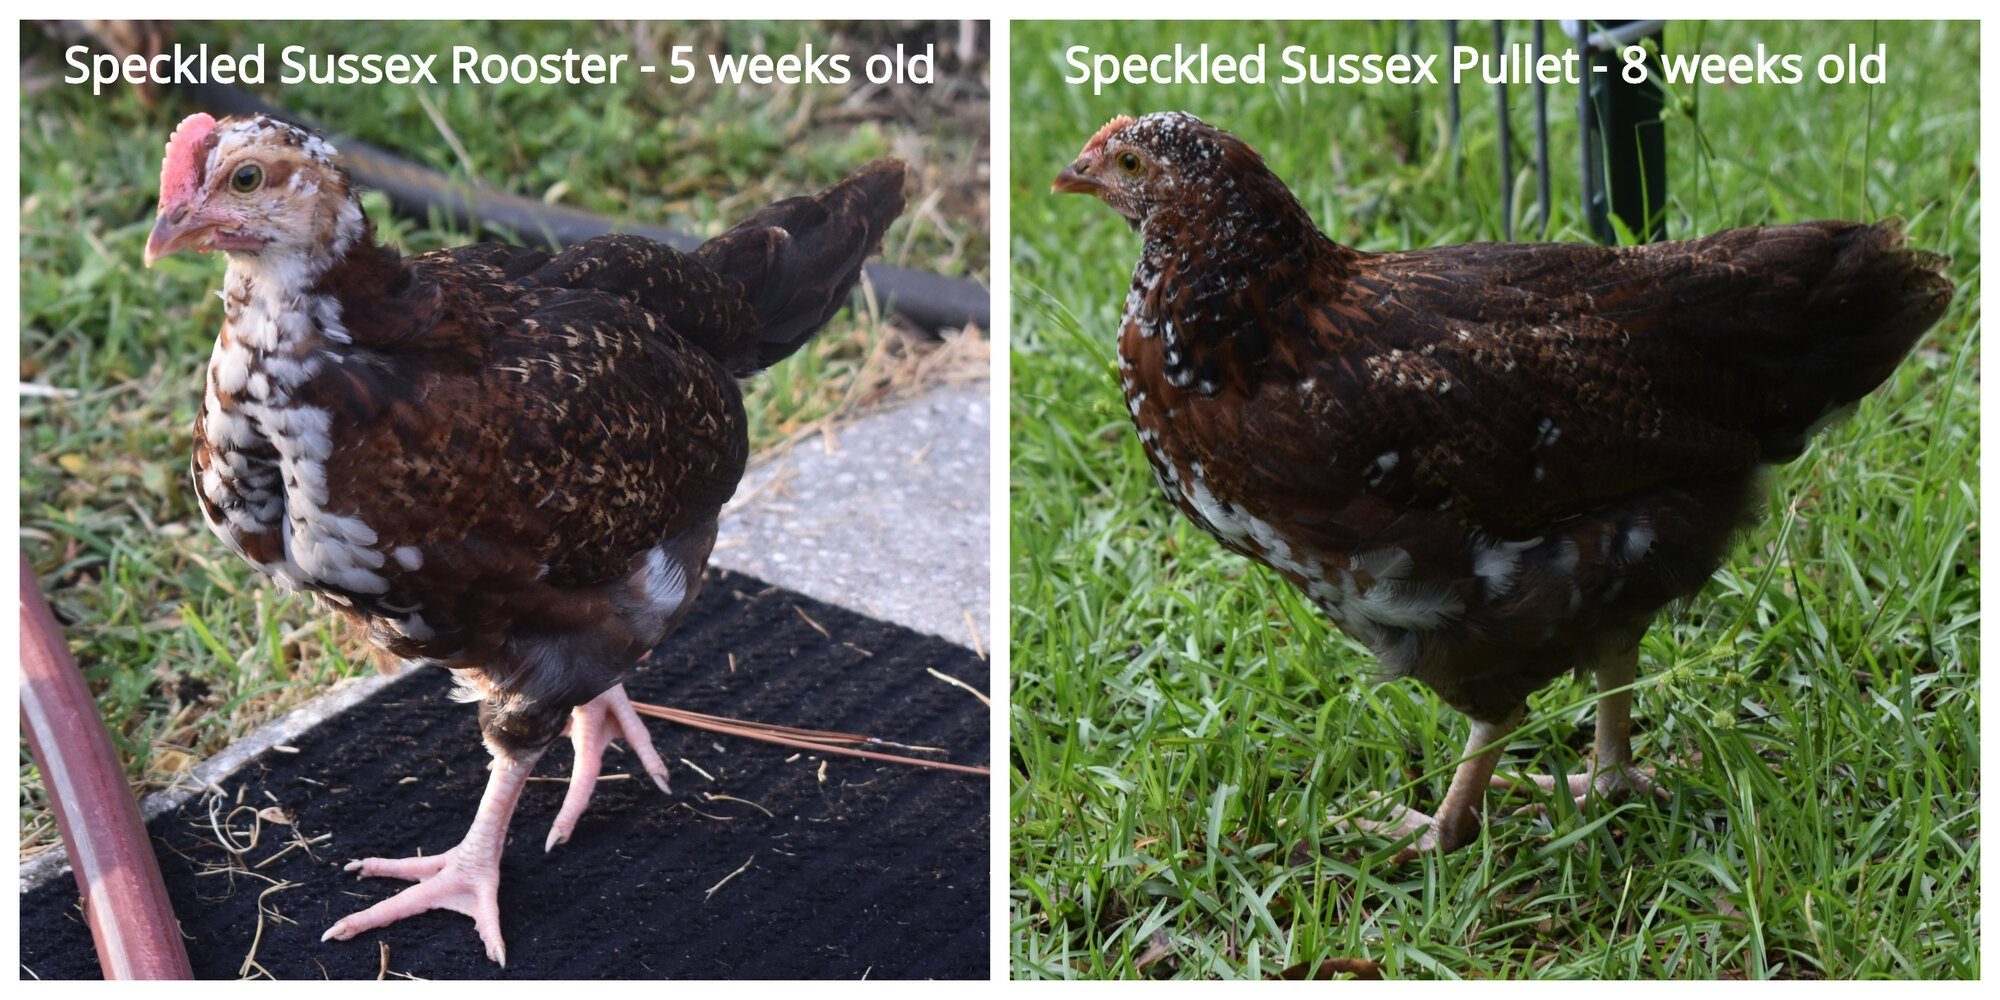 Speckled Sussex Roo vs Pullet.jpg